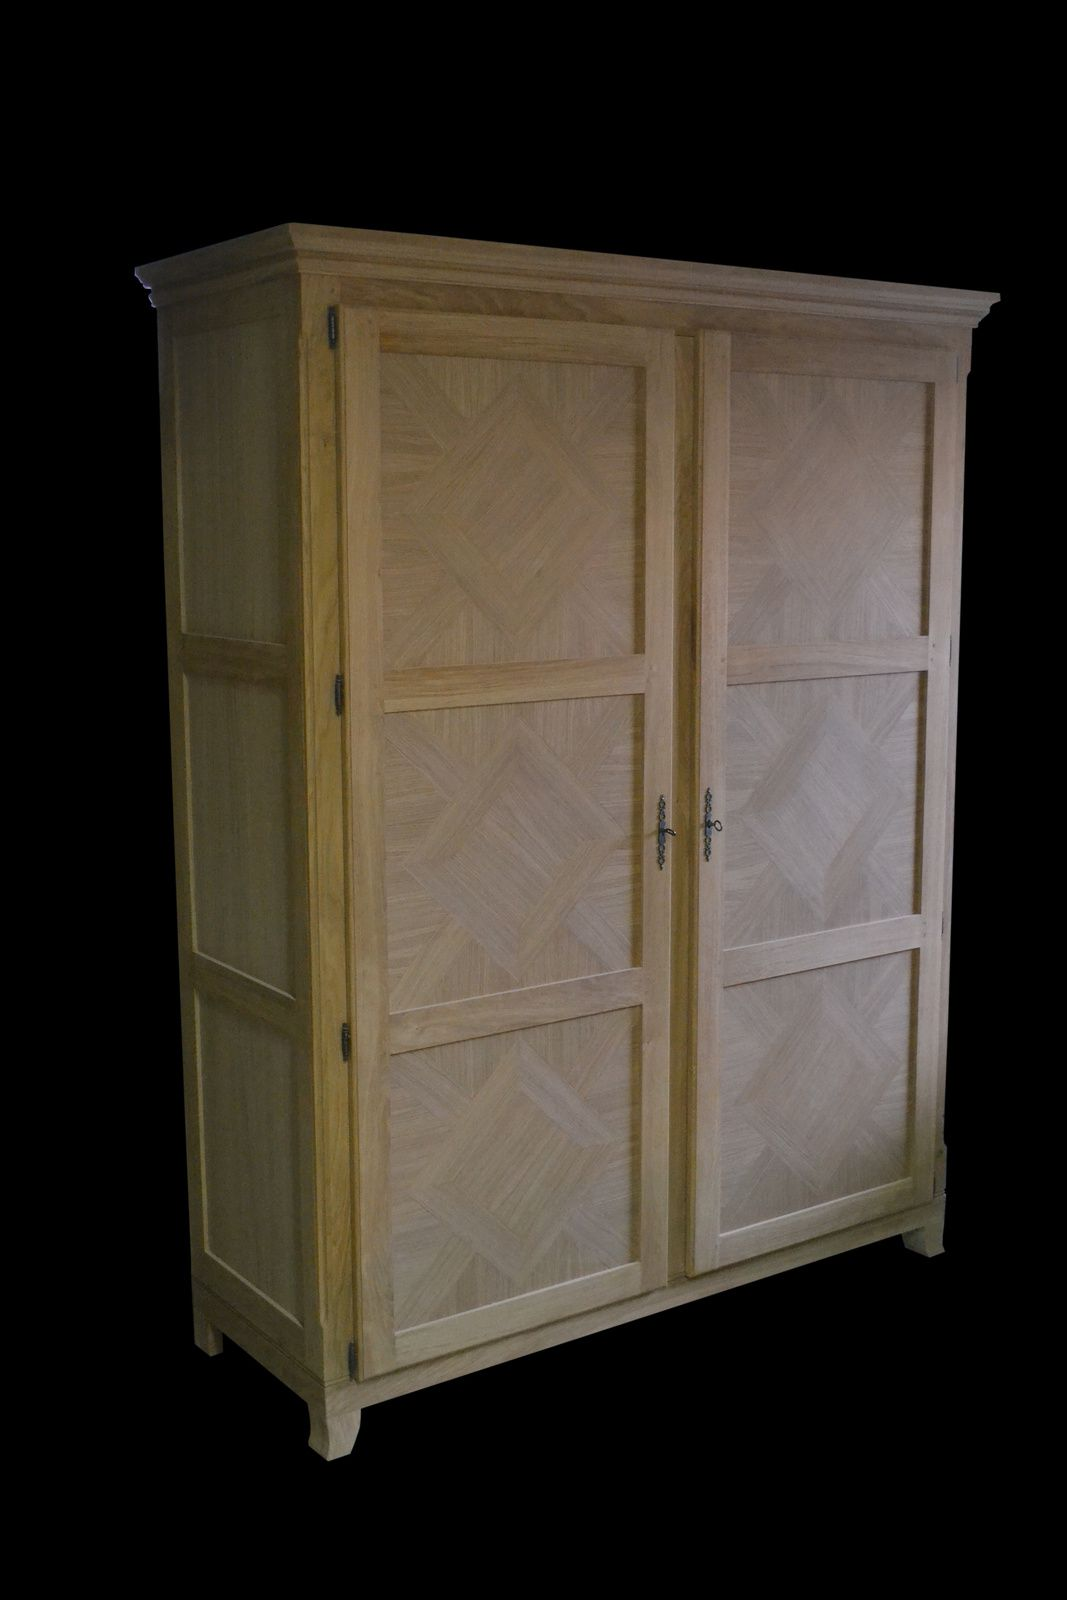 armoire penderie ch ne et marqueterie de ch ne armarbois mobilier bois sur mesure. Black Bedroom Furniture Sets. Home Design Ideas